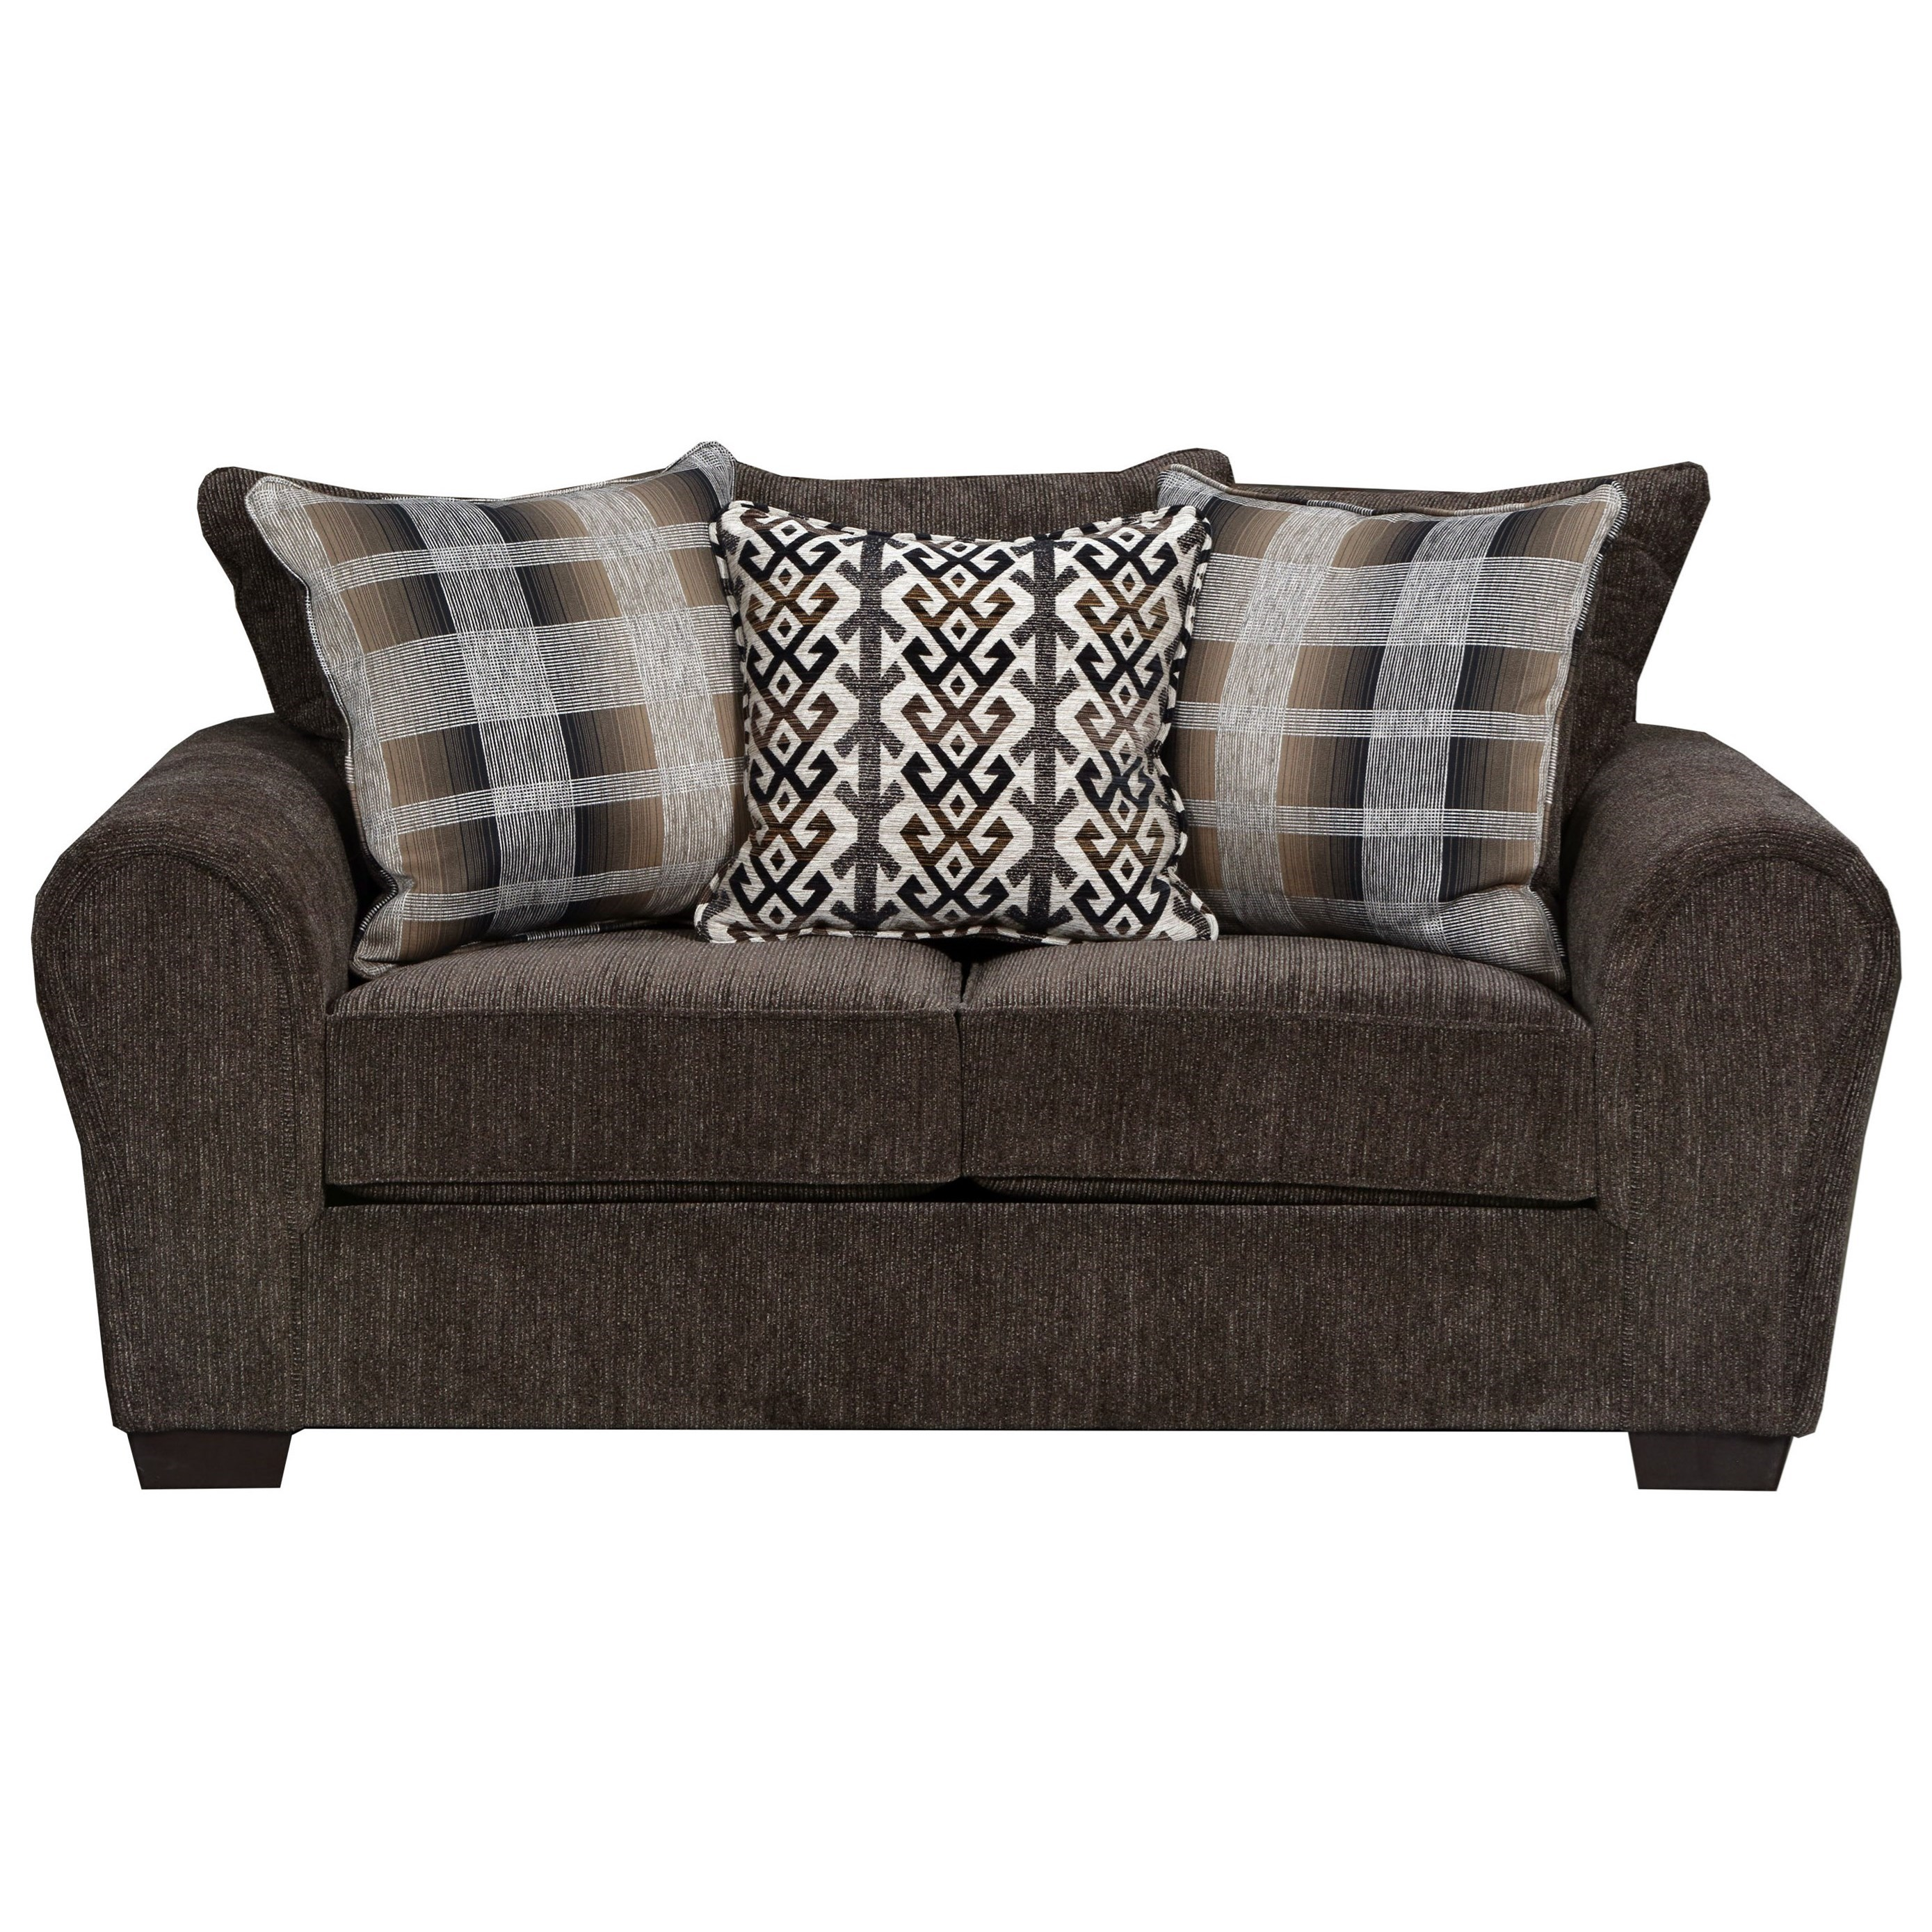 9182BR Loveseat by United Furniture Industries at Dream Home Interiors